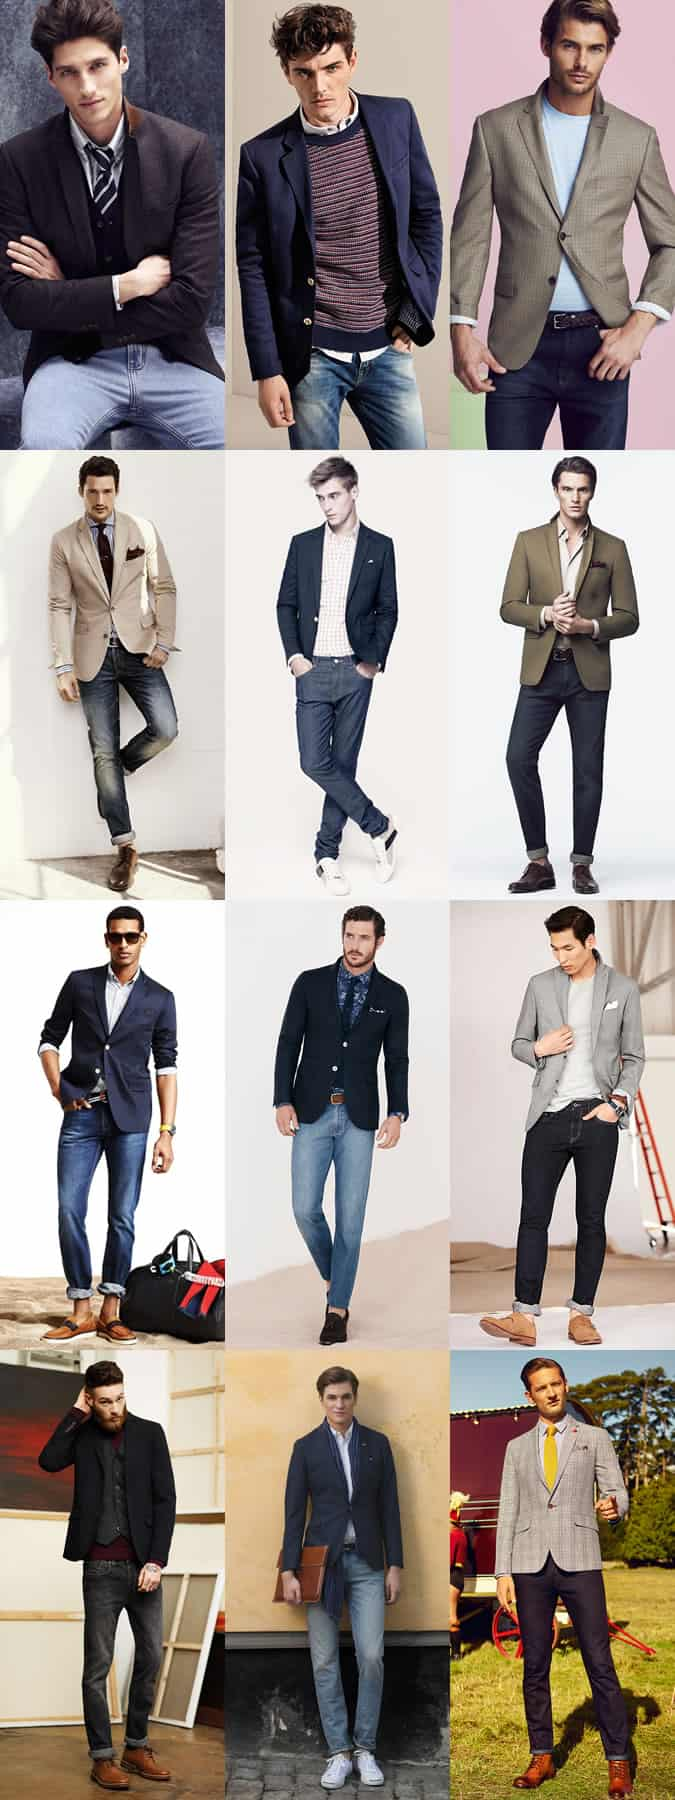 Men's Jeans With Blazers Outfit Inspiration Lookbook